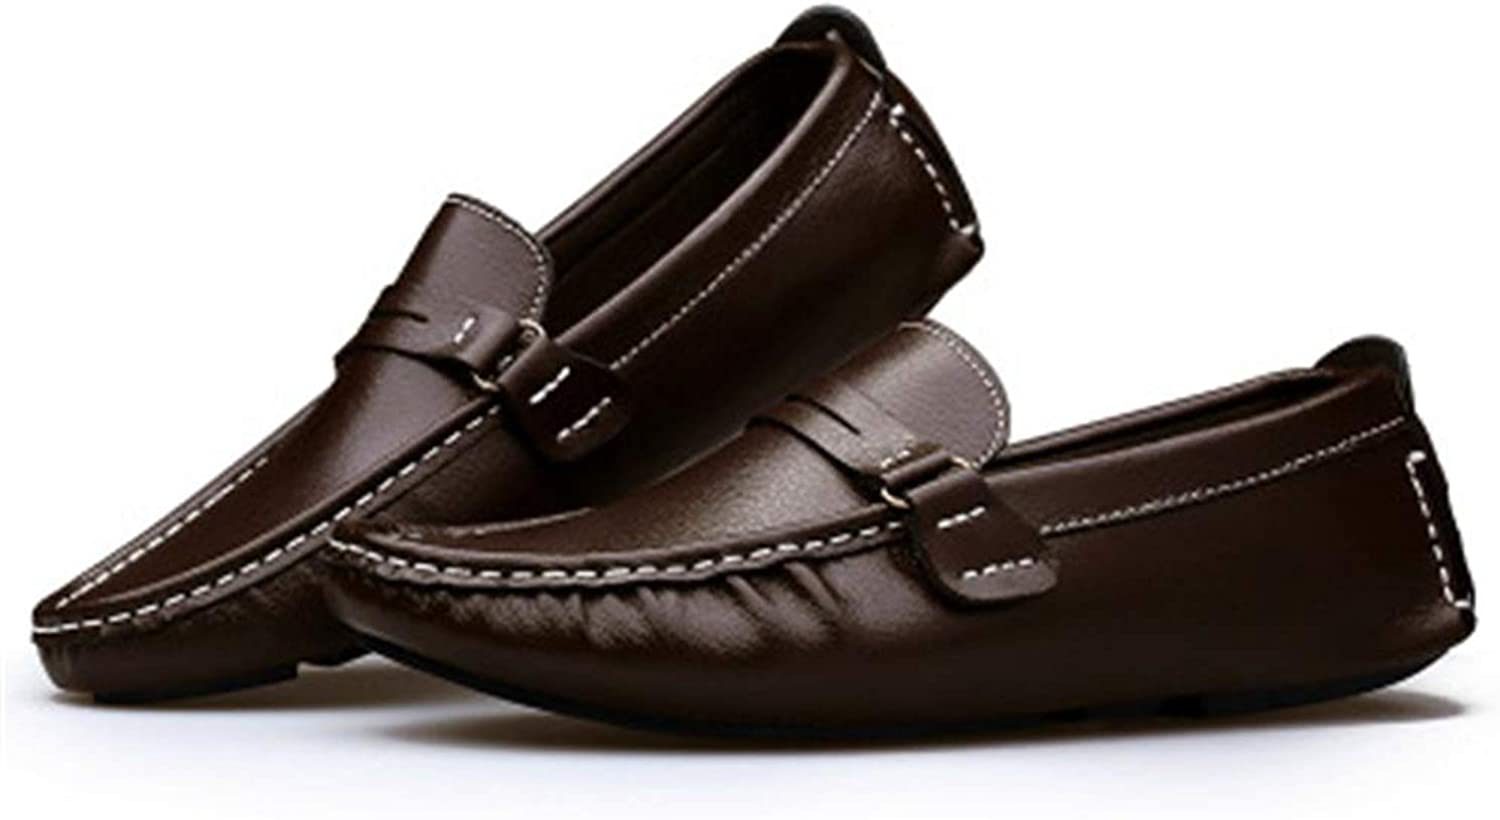 Pleasantlyday Men shoes Genuine Leather Loafer Boat Peas Slip On Flats Walk Drive Moccasins Breathable British Style